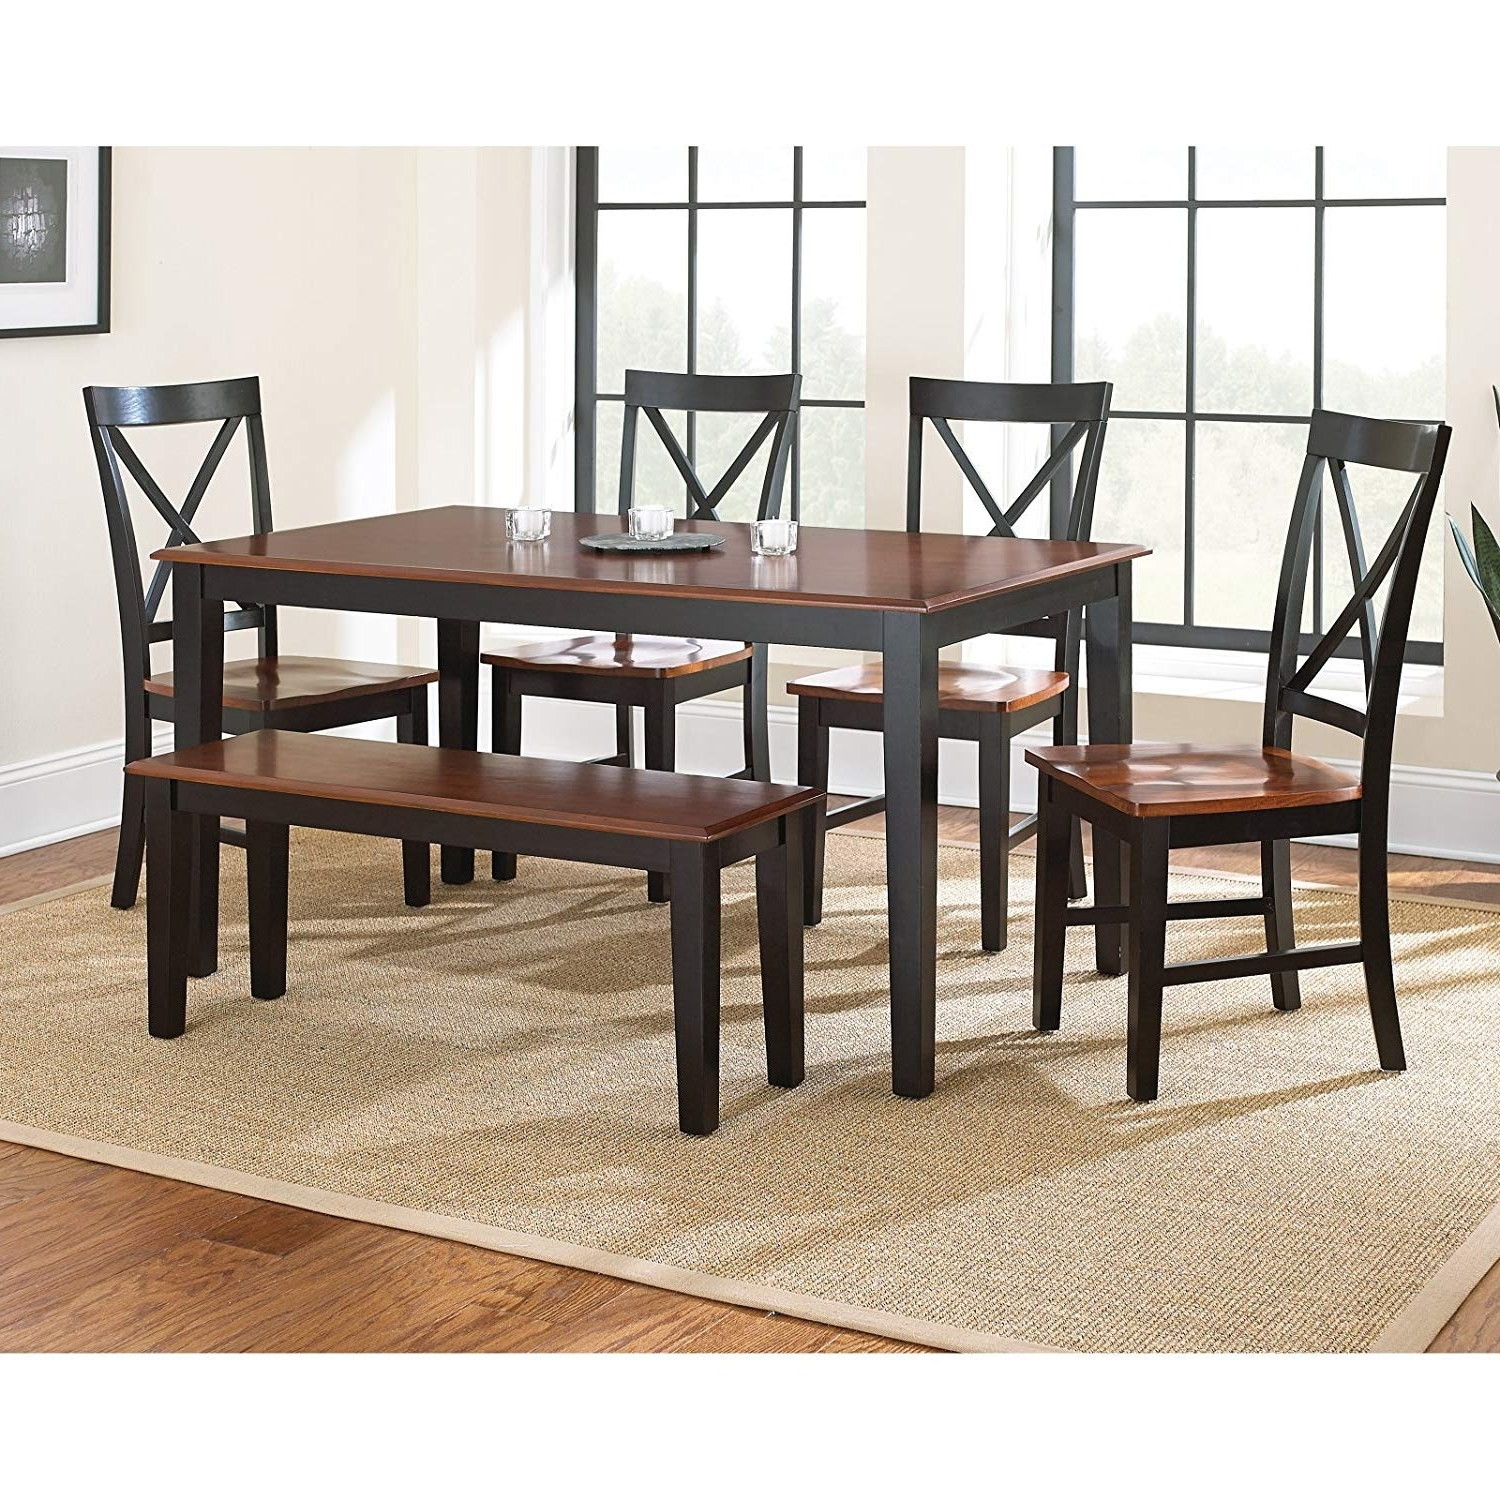 Kingston Dining Tables And Chairs Within Newest Amazon – Steve Silver Company Kingston Dining Table, Oak/black (View 13 of 25)